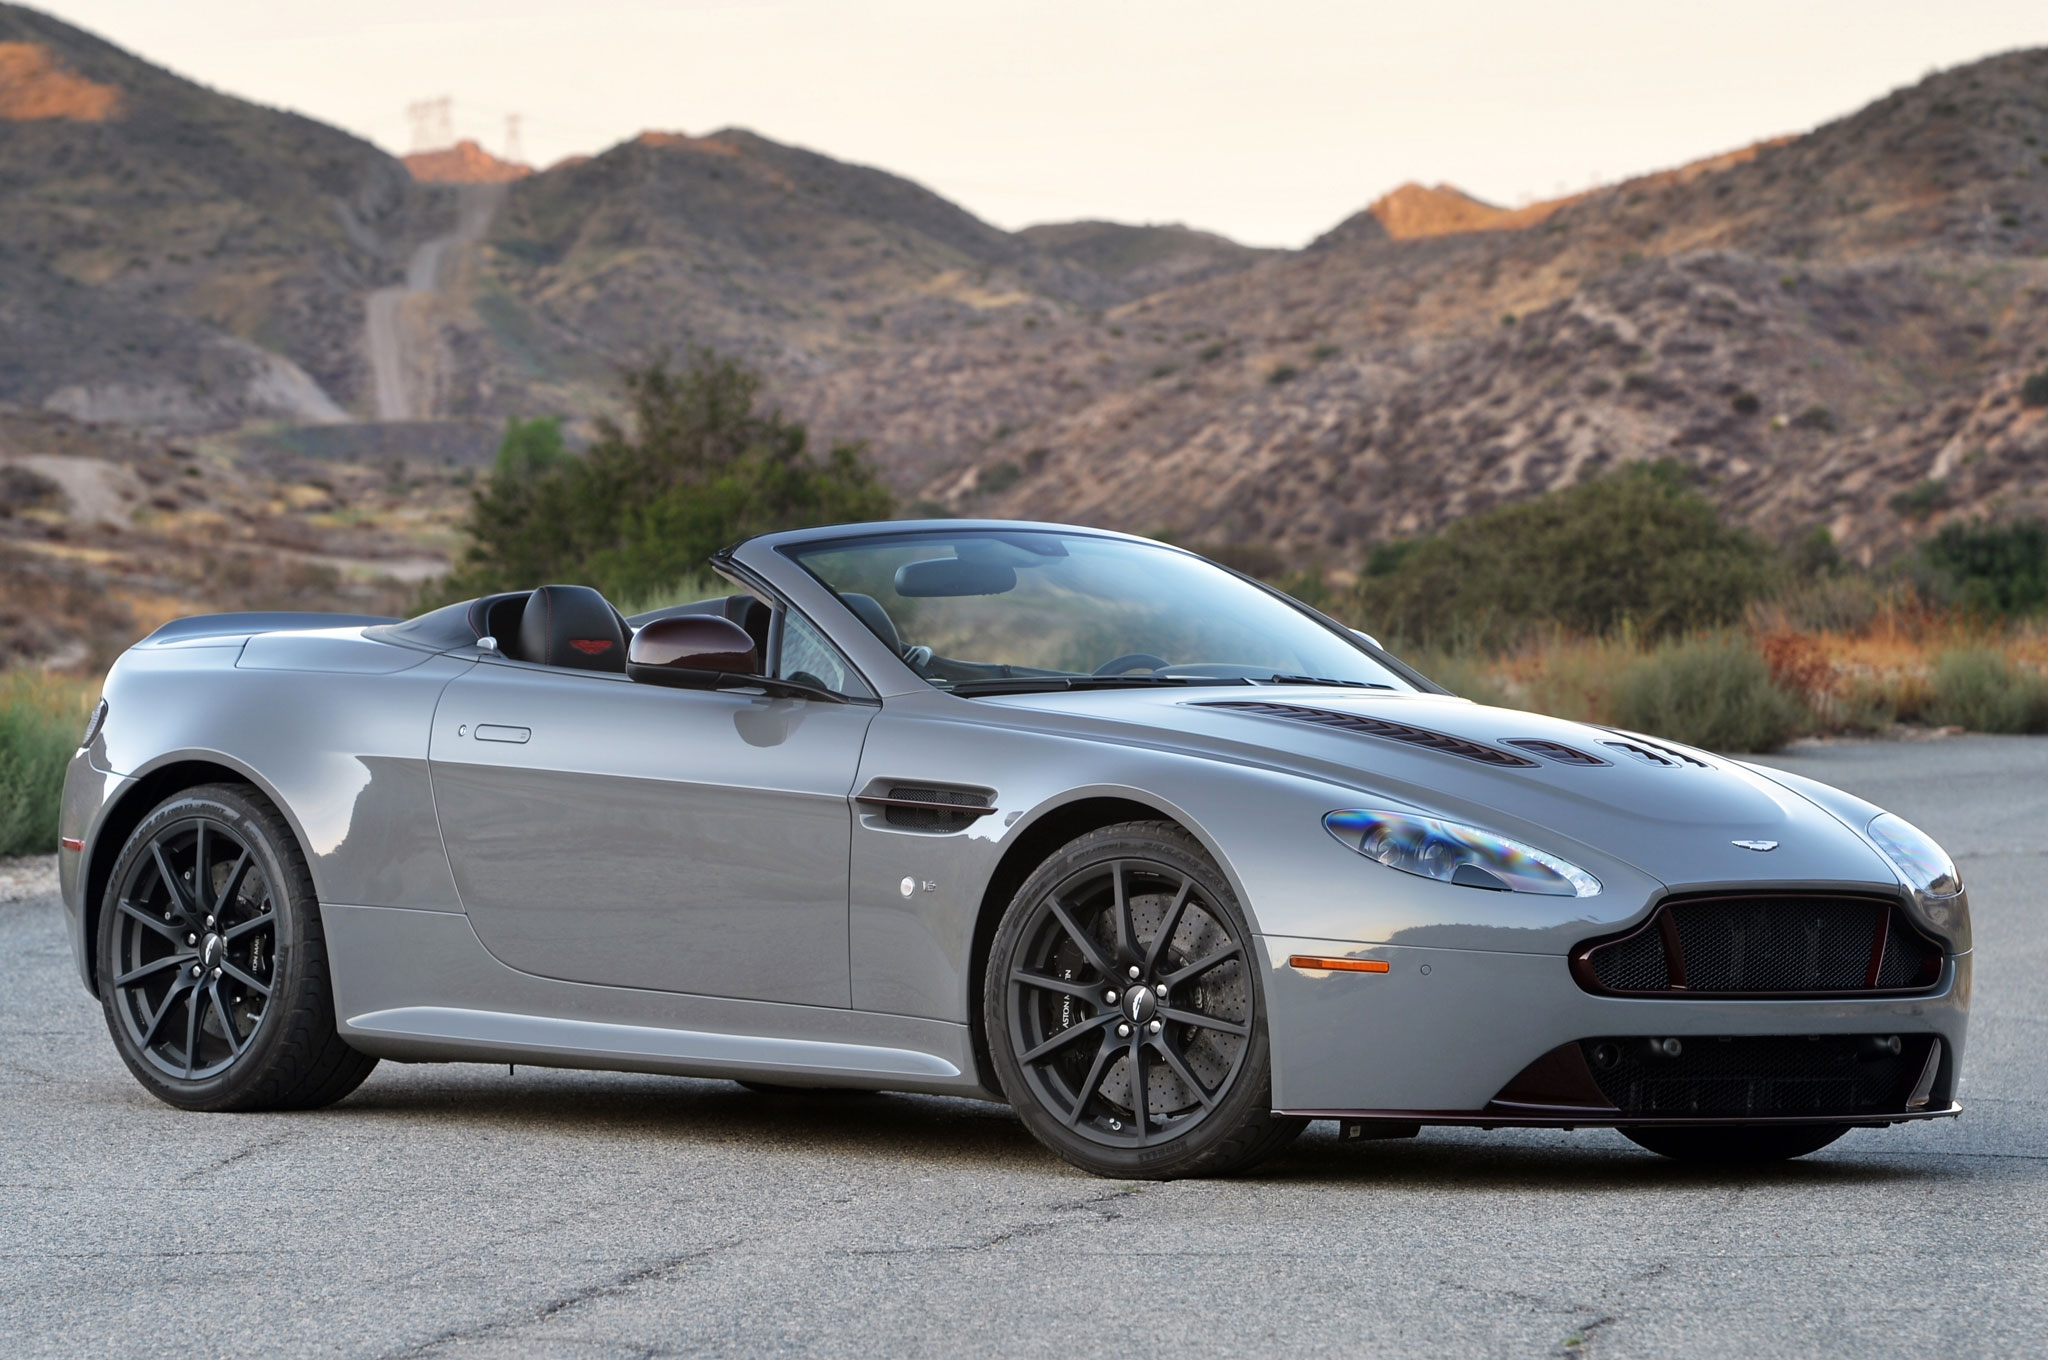 2015 Aston Martin V12 Vantage S Roadster Hd Wallpapers Download 2048x1360